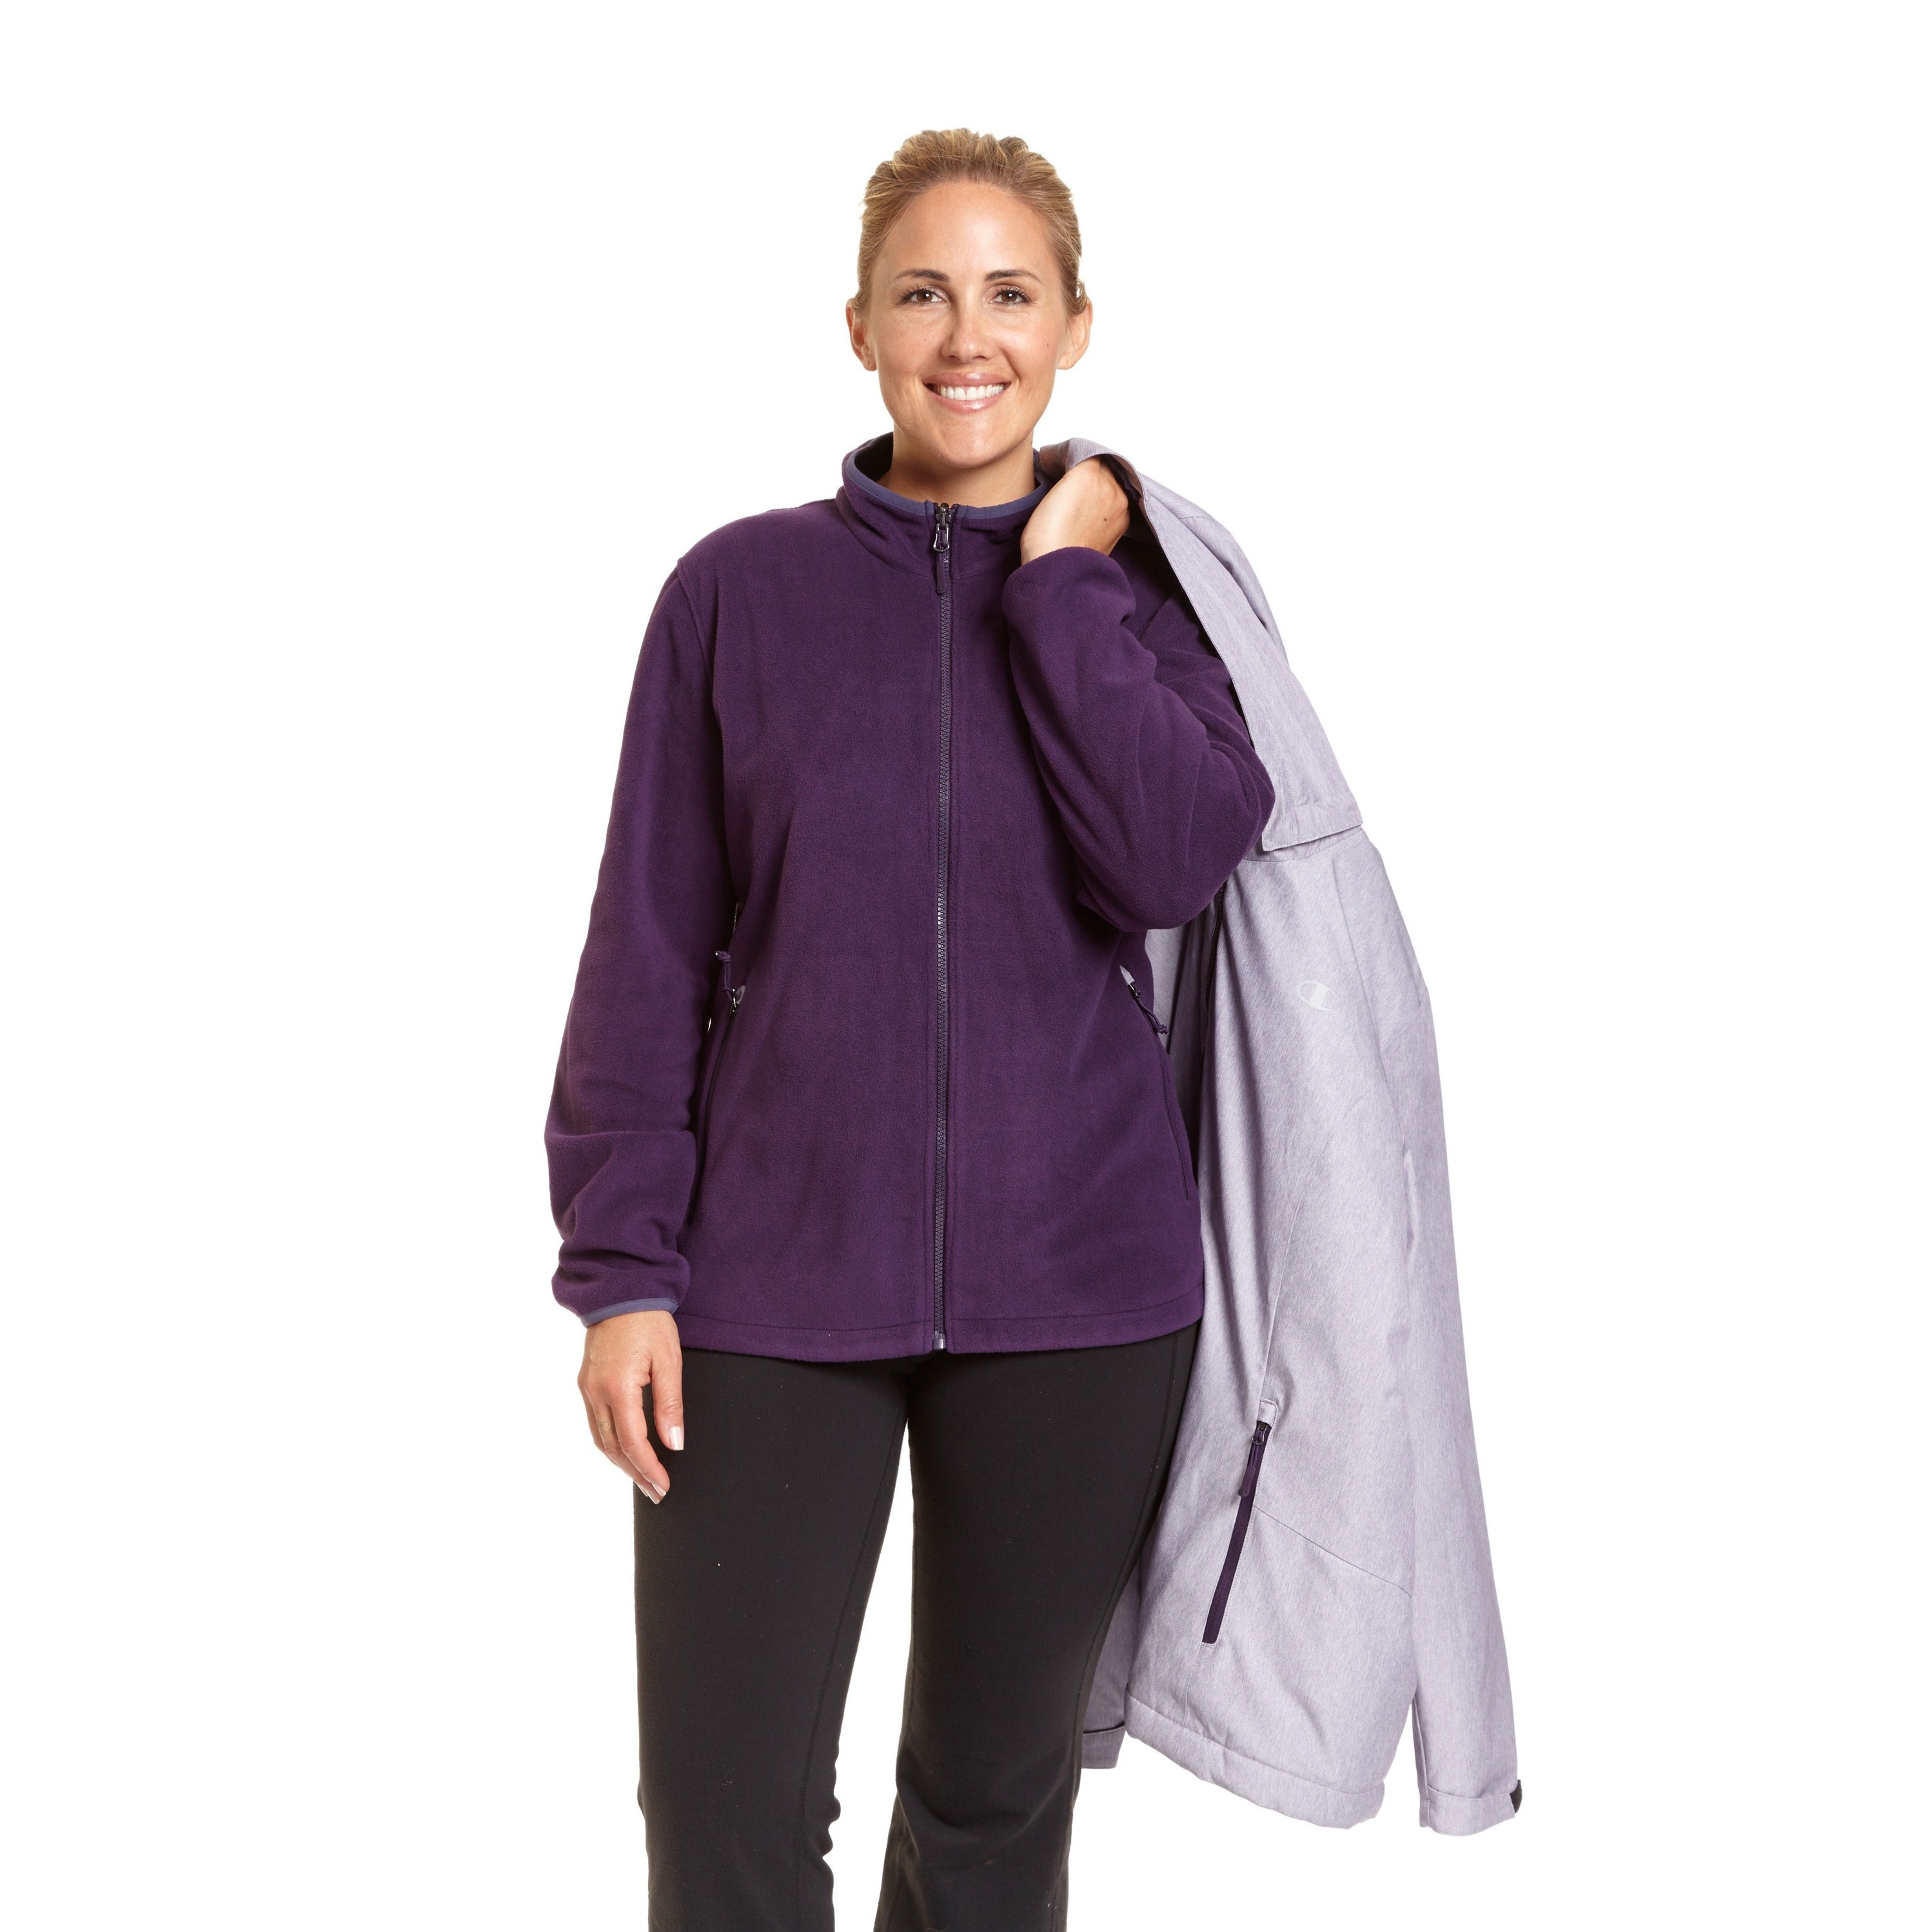 Champion Women's Plus 3-in-1 Systems Jacket - Free Shipping Today -  Overstock.com - 17527286